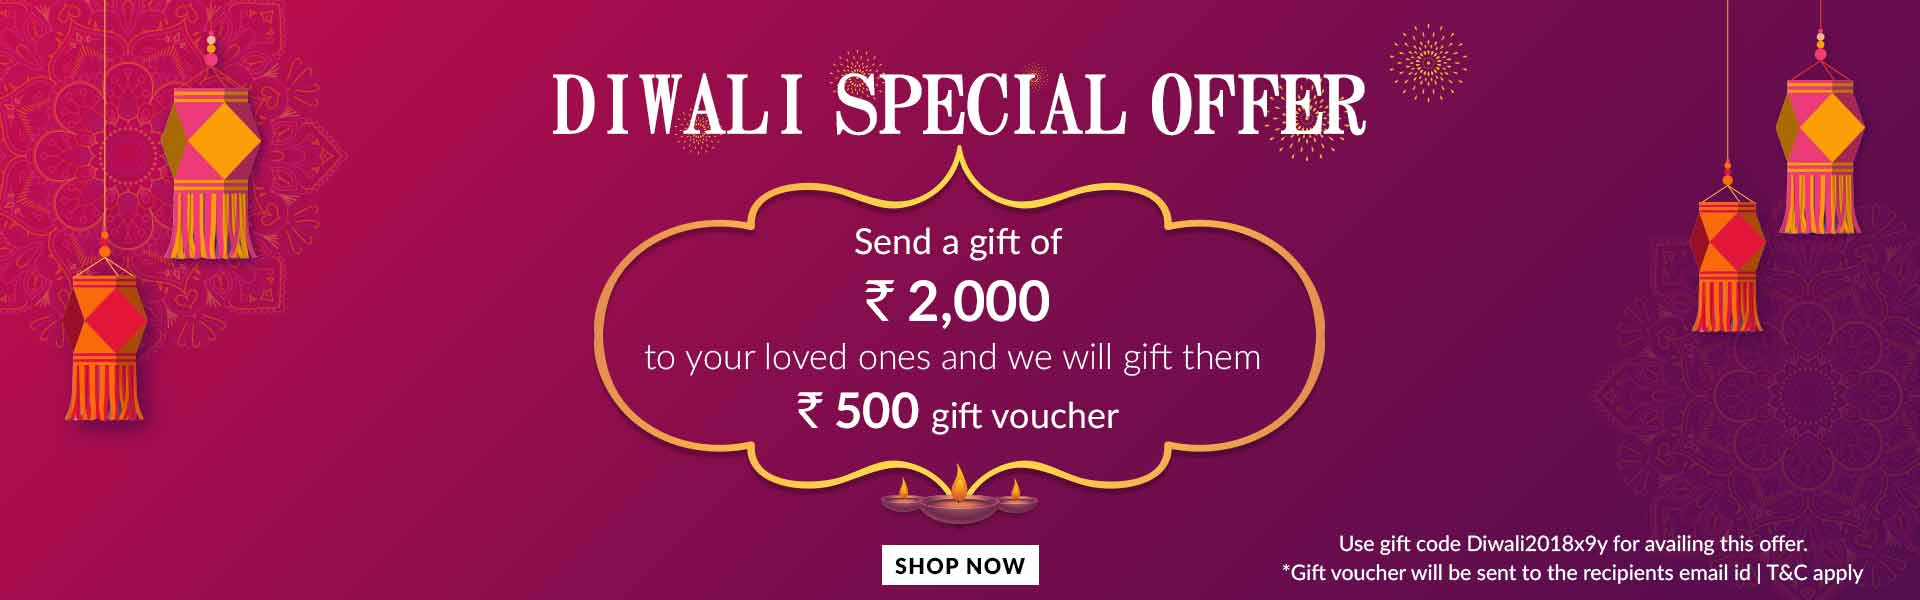 Send Gifts to India for Birthdays, Anniversary, etc & Gift Ideas to ...